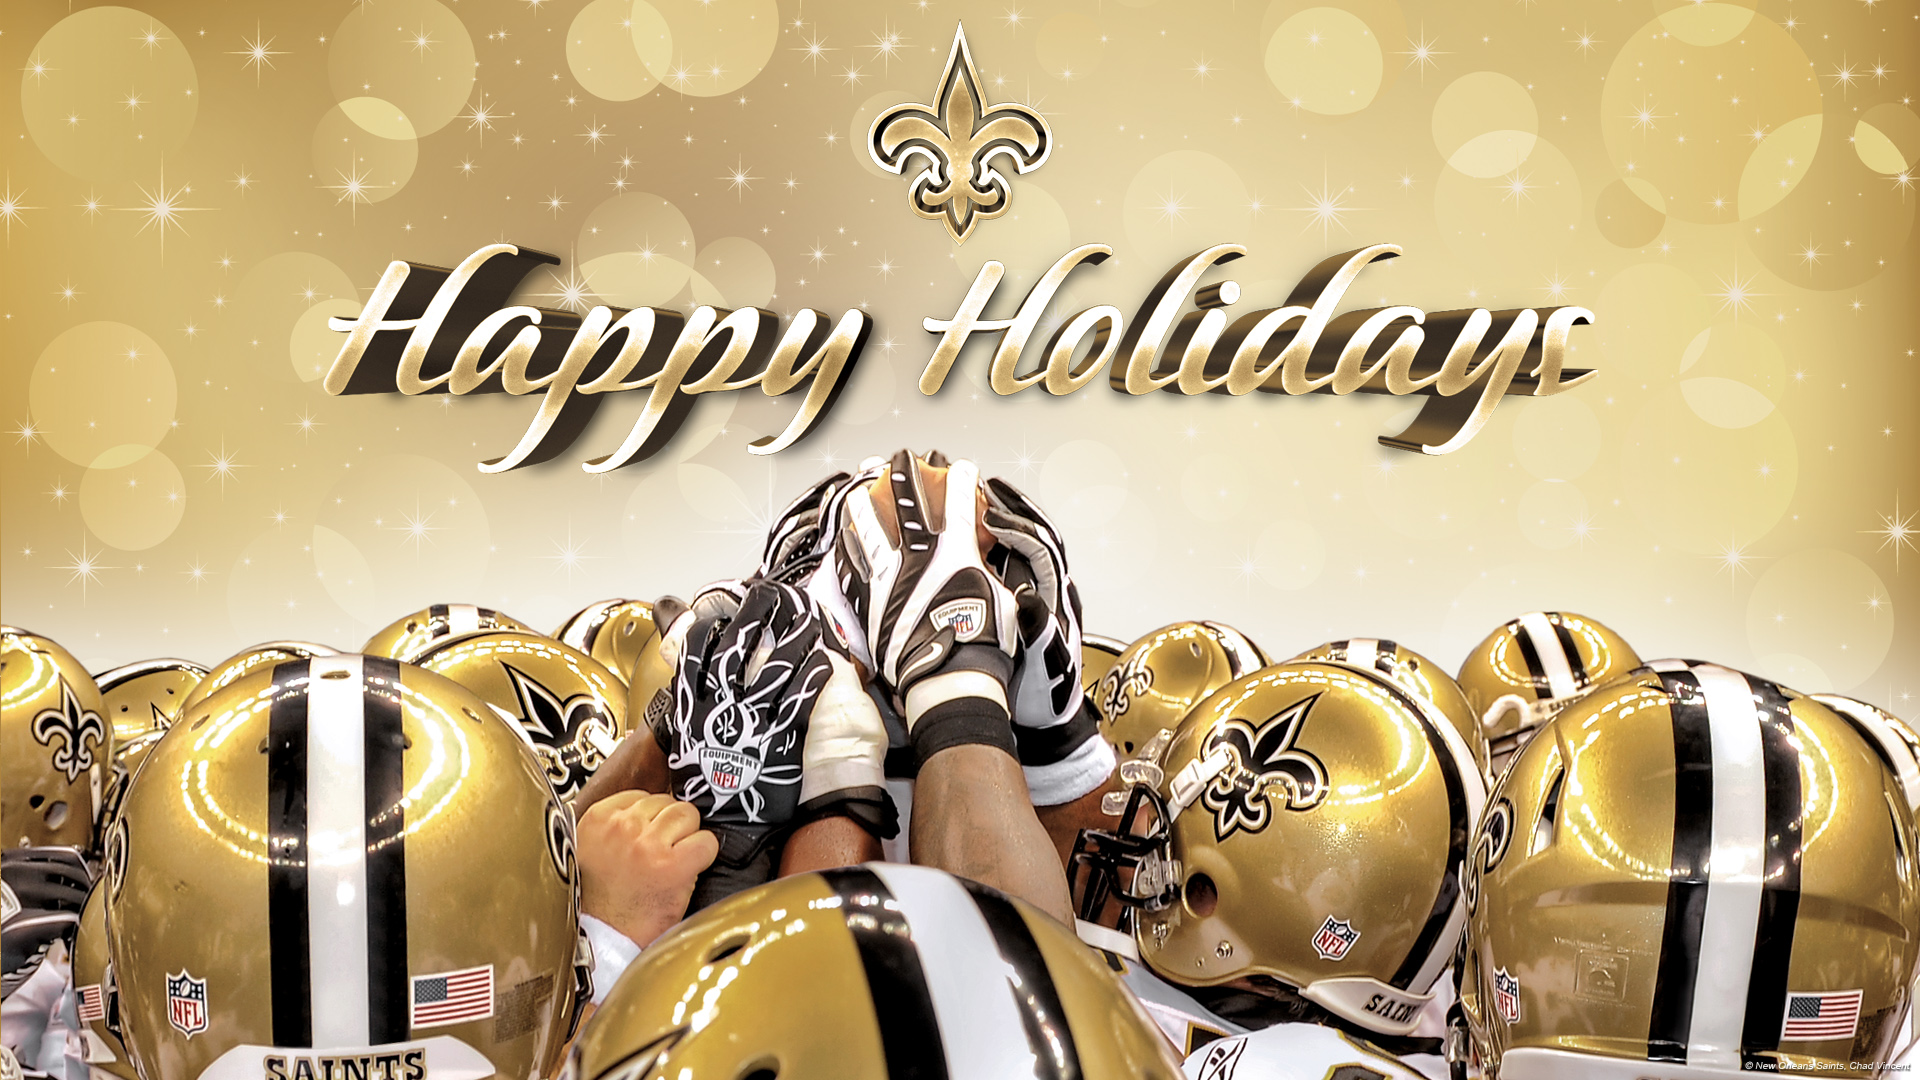 New Orleans Saints Nfl Football Christmas New Year Holiday